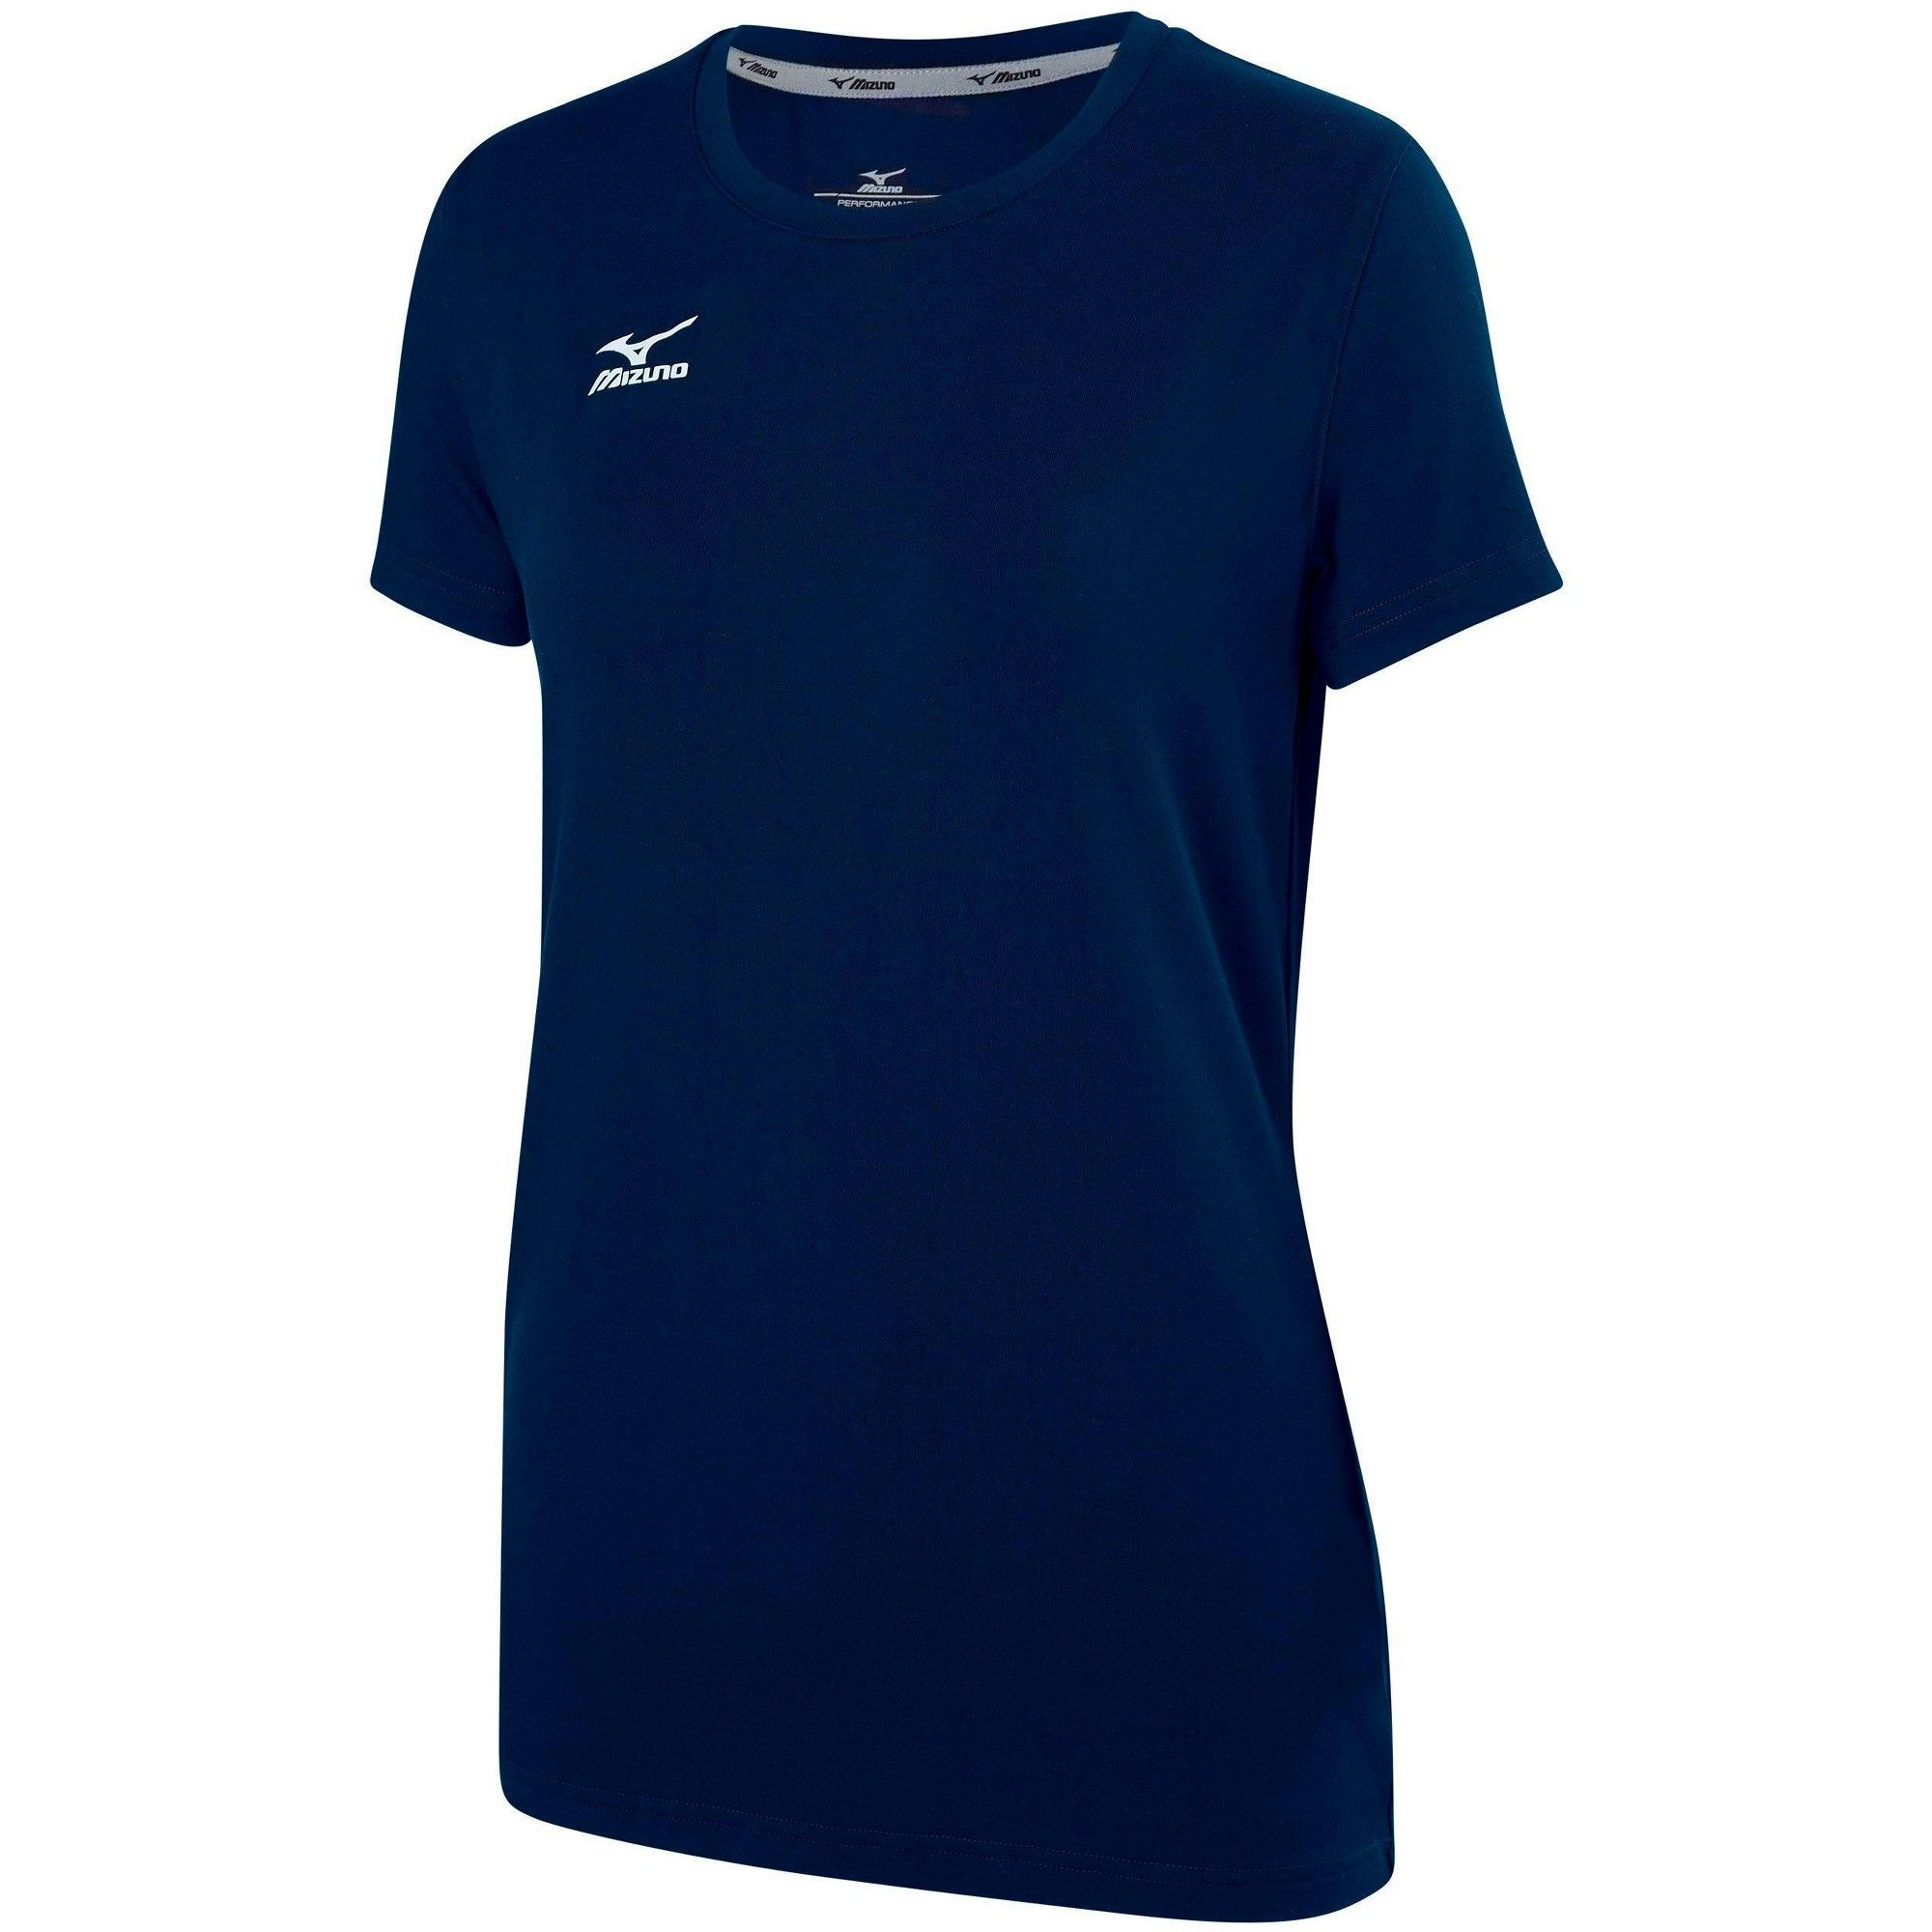 Mizuno Youth Girl S Volleyball Attack Tee Shirt 2 0 Girls Size Medium In Color Navy 5151 Blue Women Volleyball Tees Women